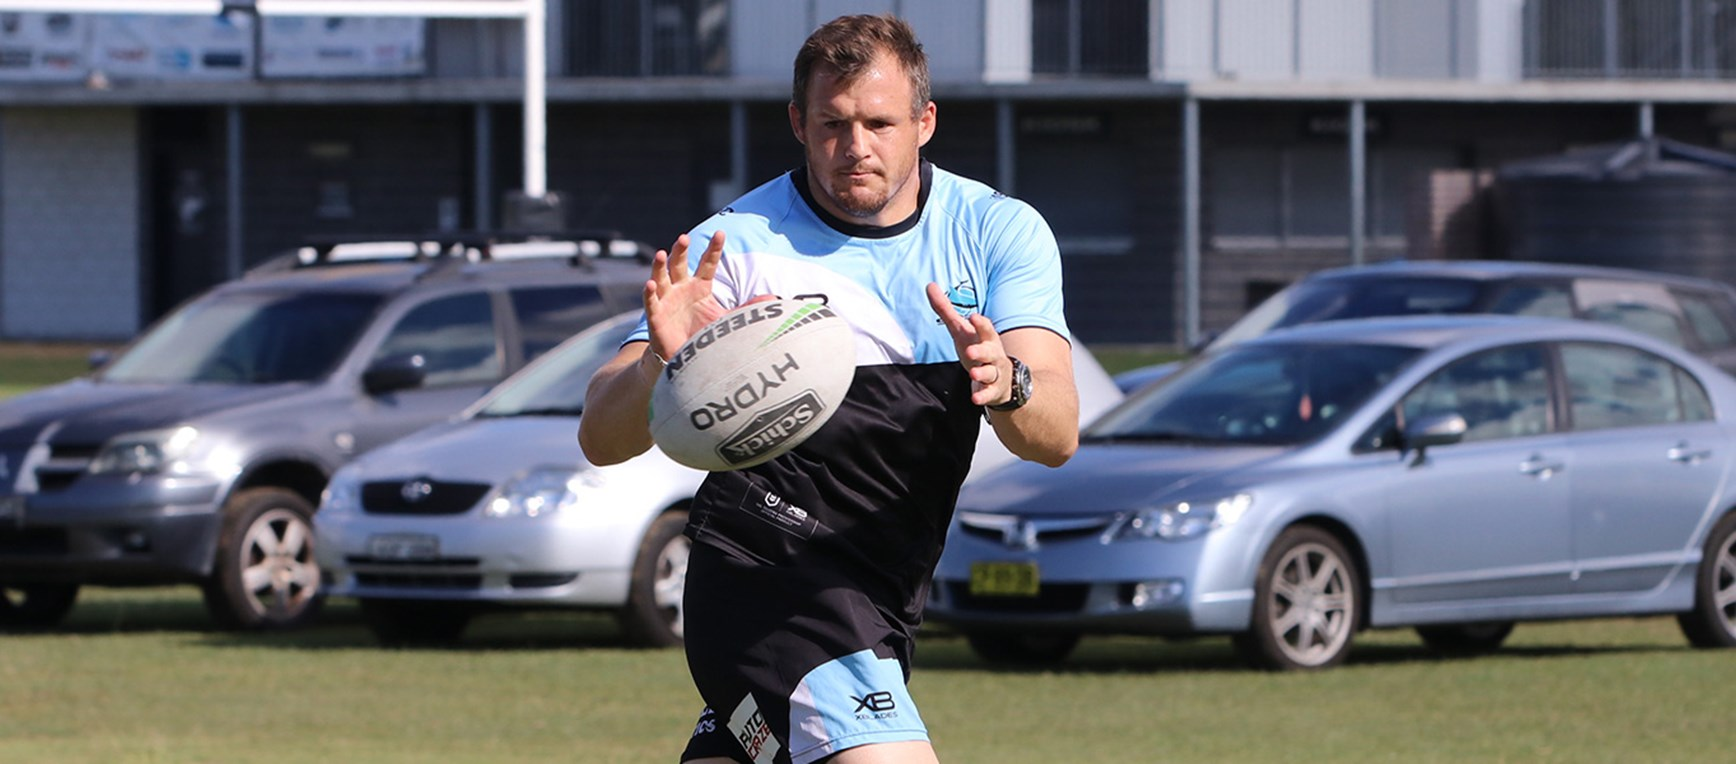 In Pictures: Sharks prepare for the Broncos